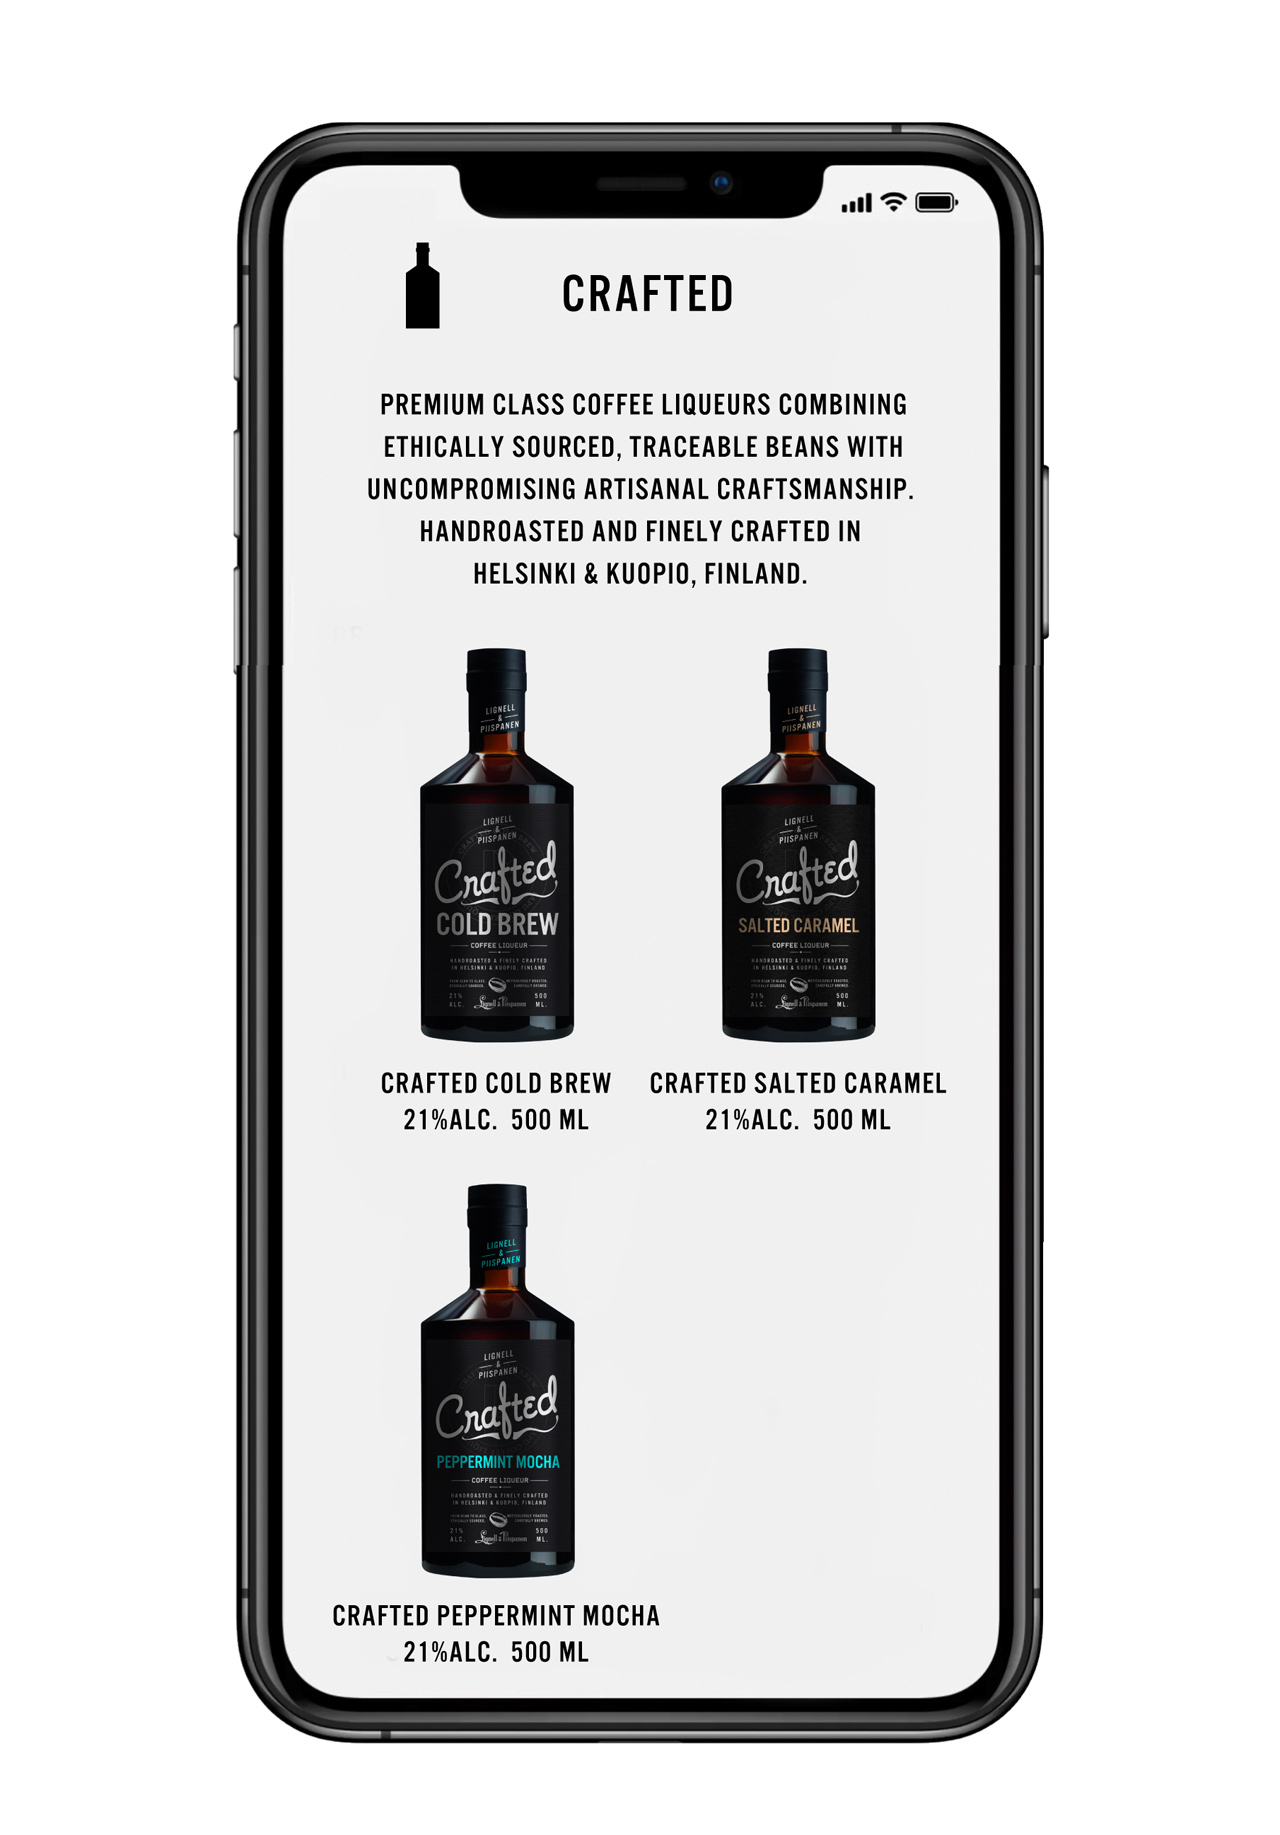 Packaging design, Crafted Cold Brew